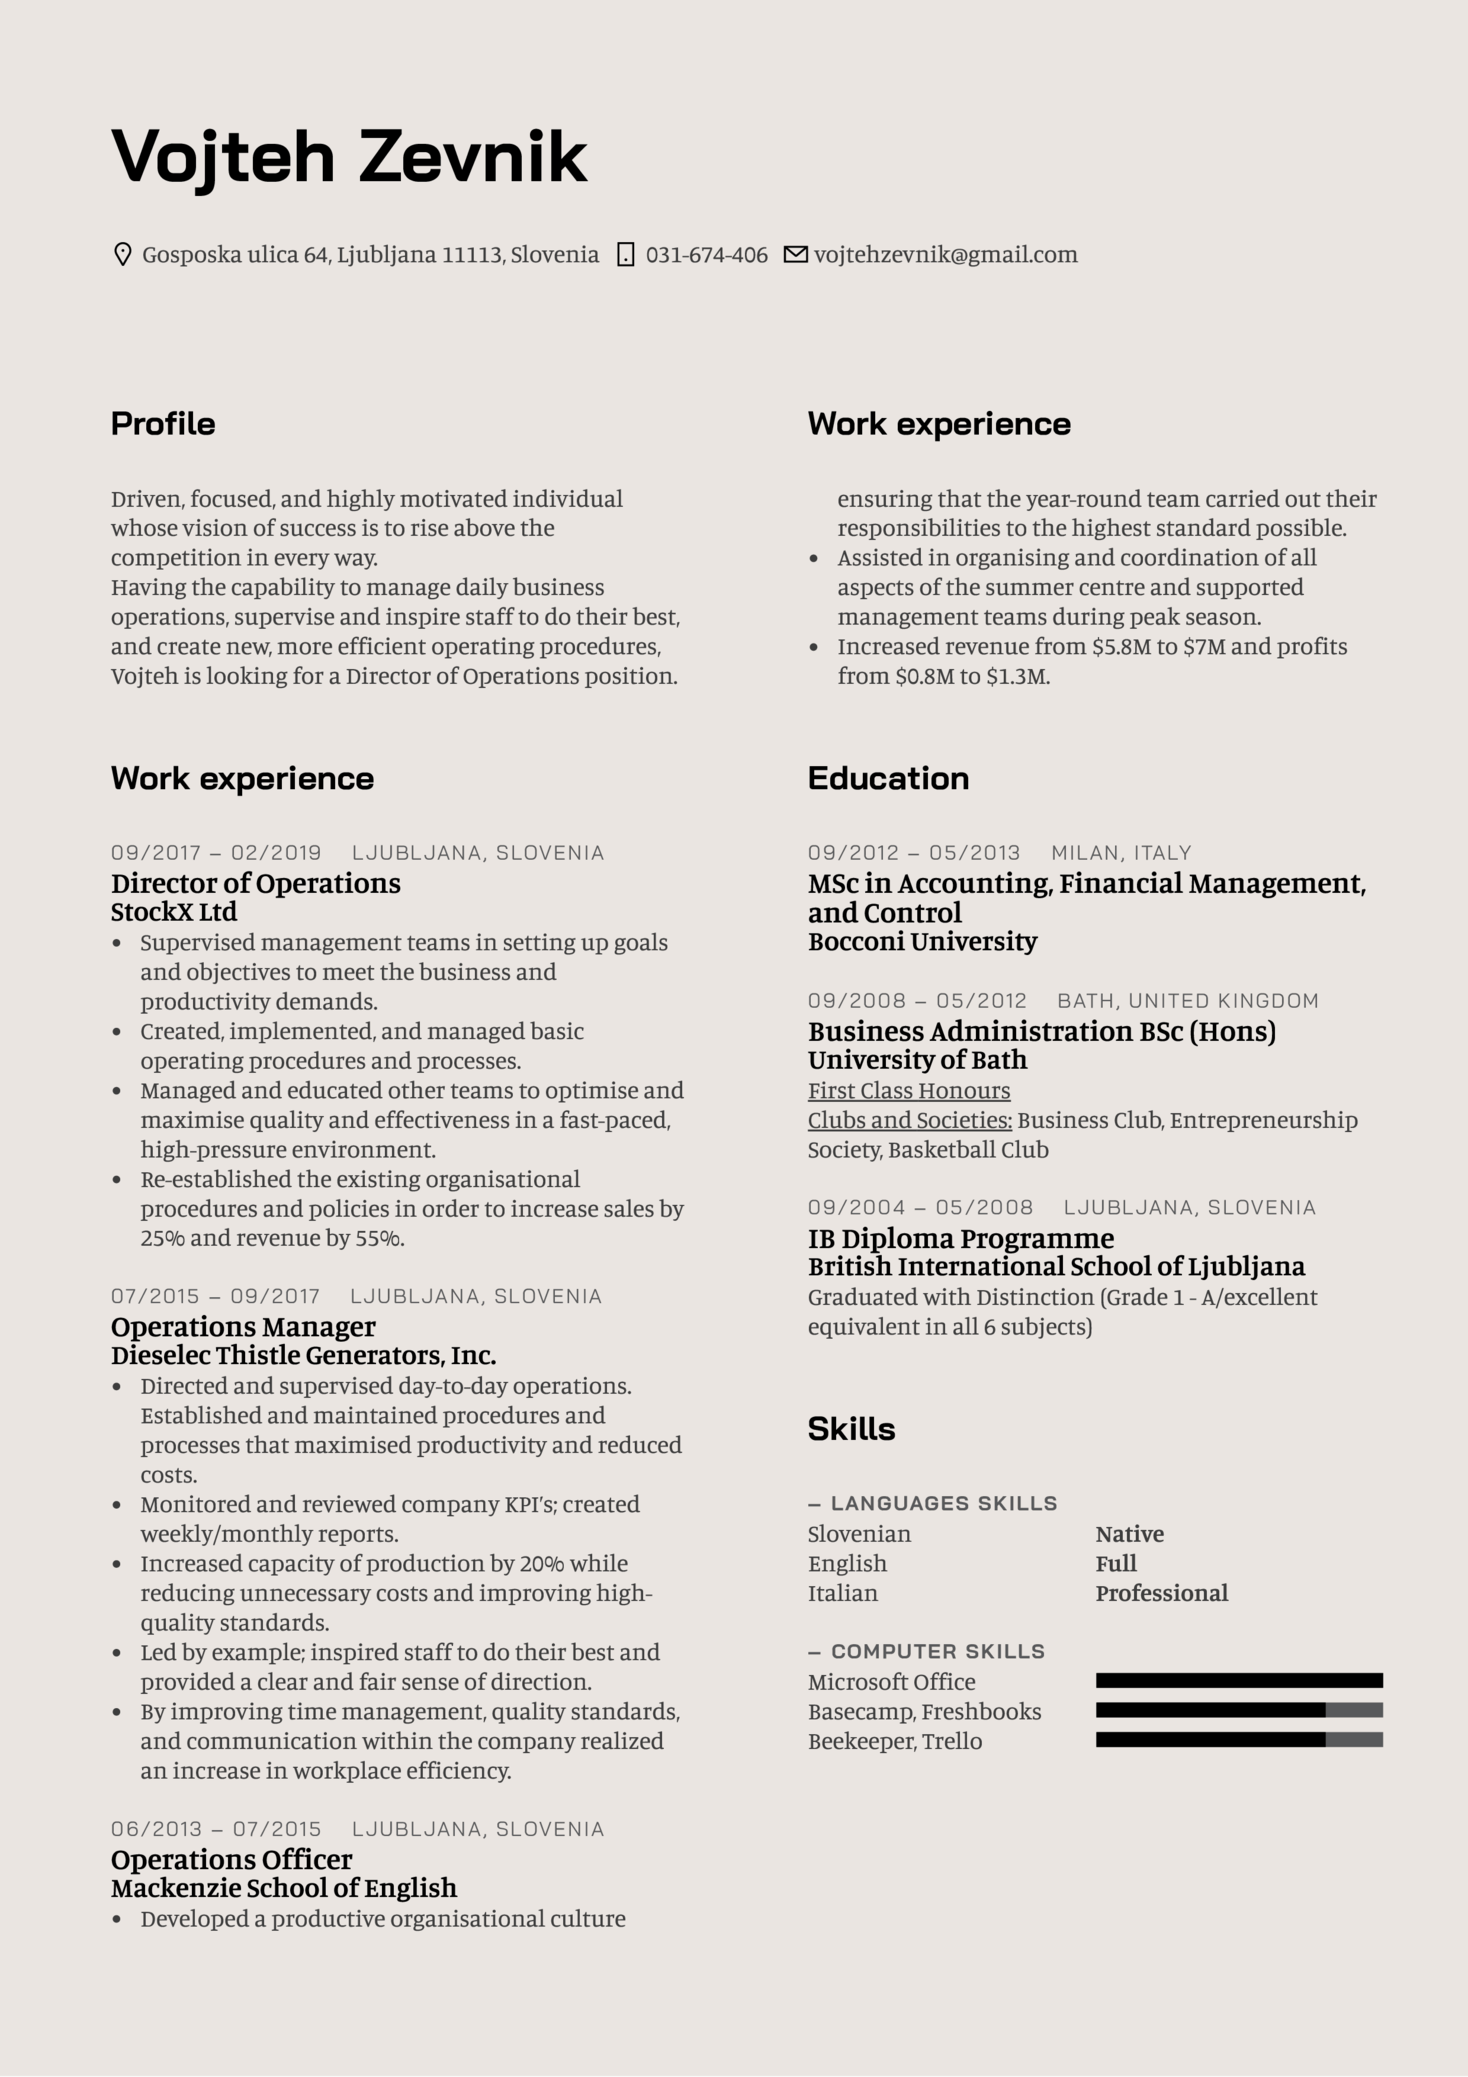 Director of Operations Resume Template (parte 1)